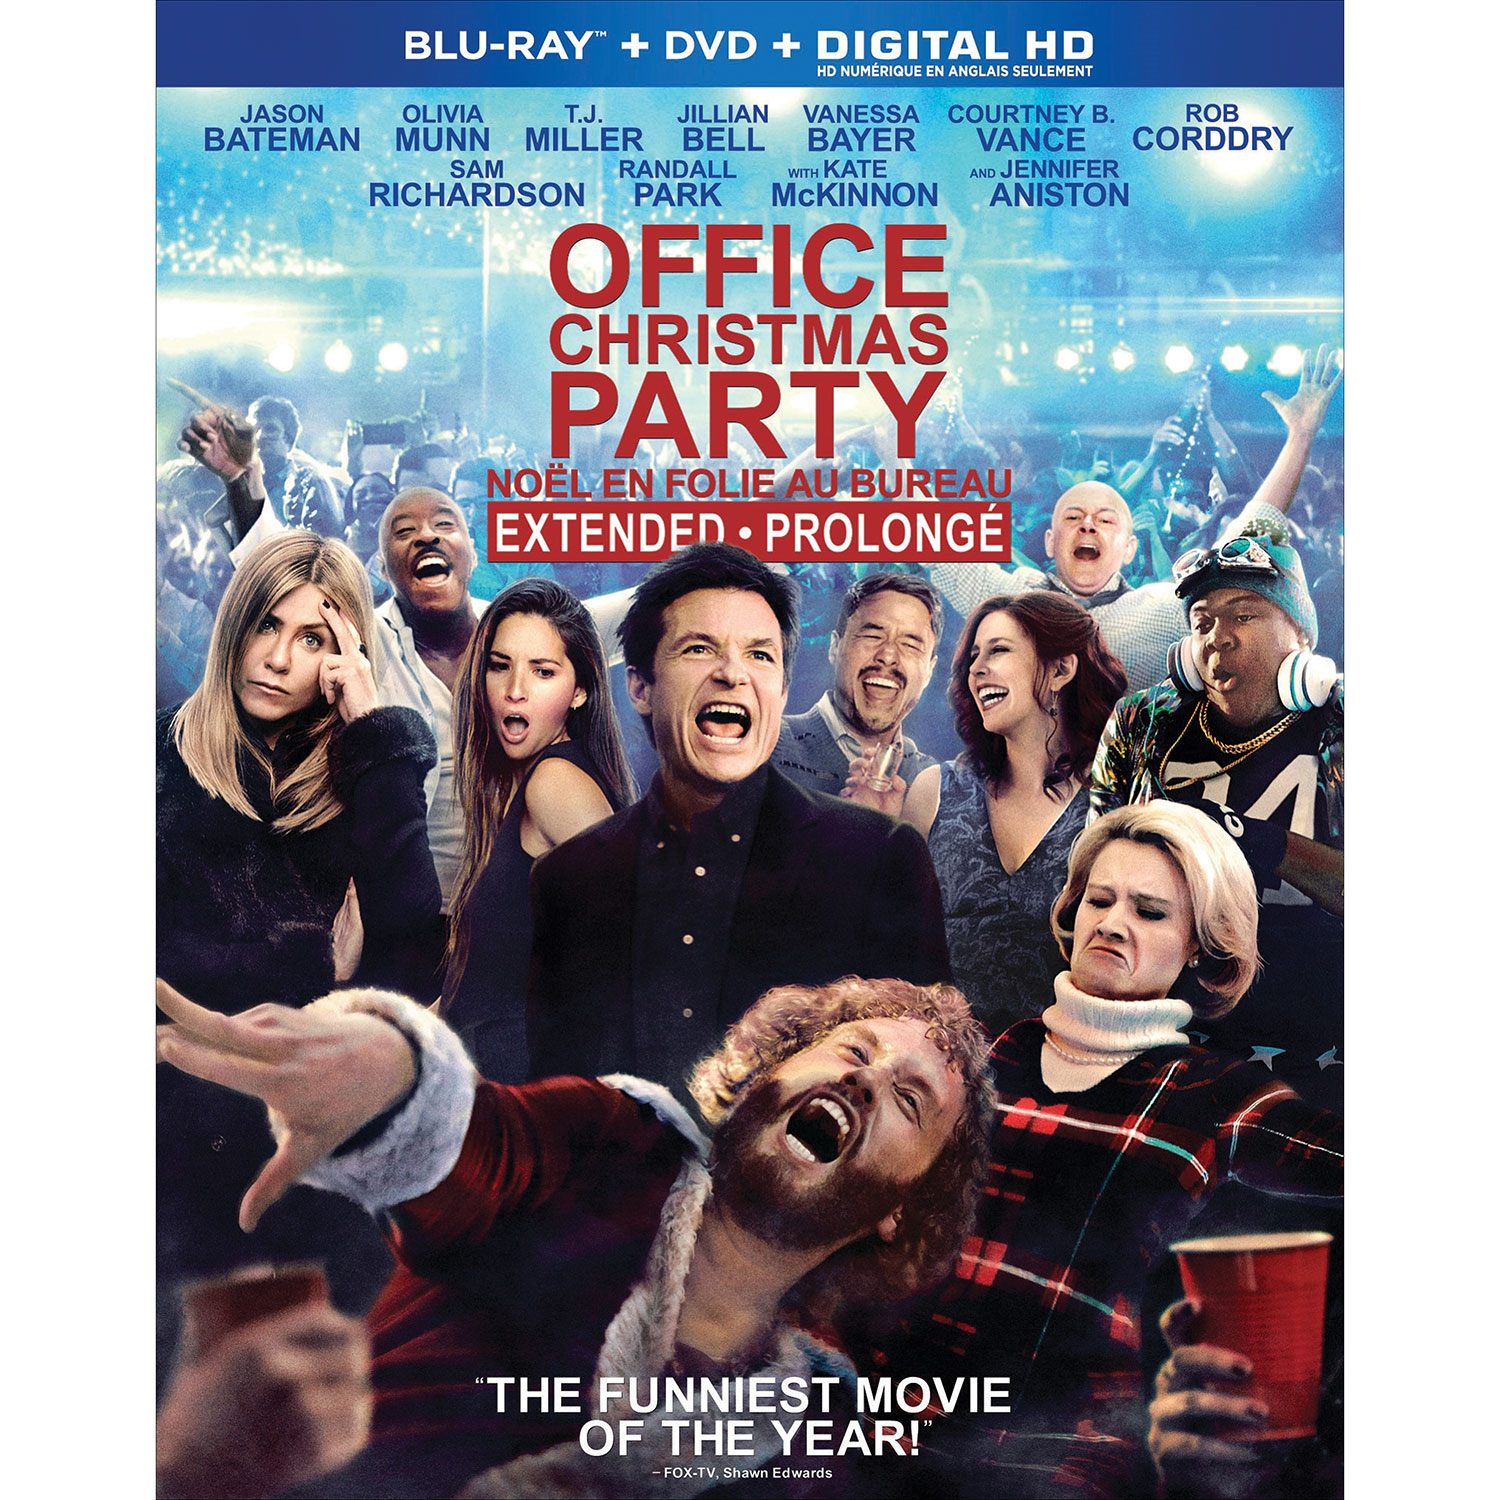 Office Christmas Party (Blu-ray Combo) (2016) : Comedy - Best Buy Canada